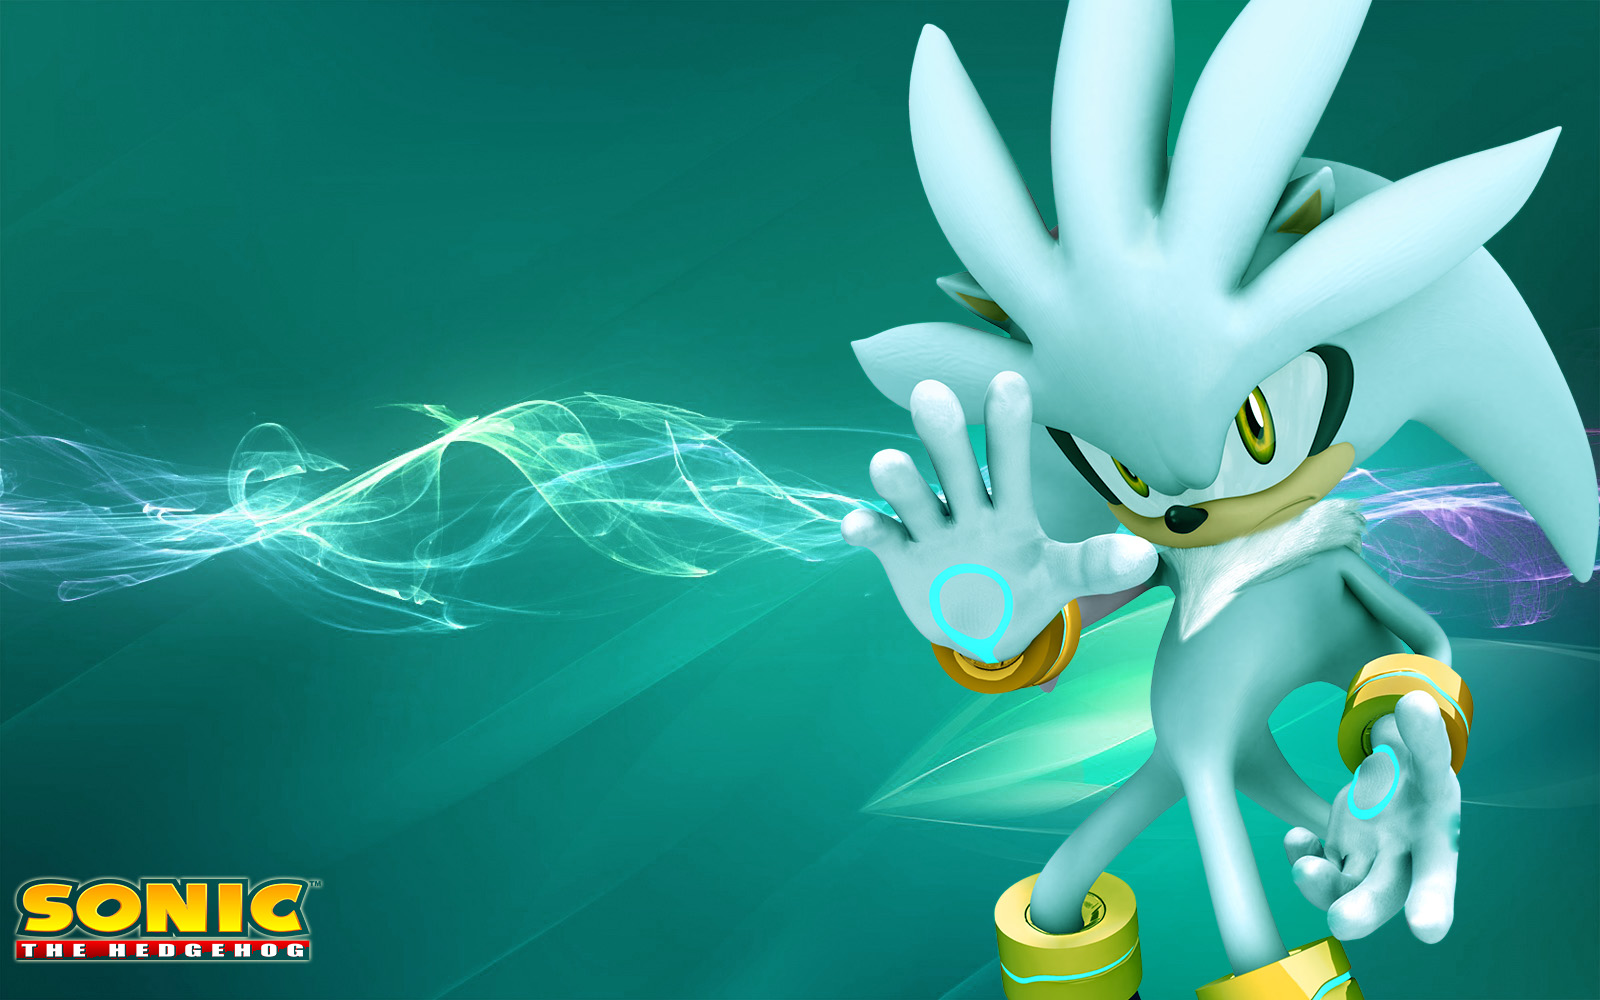 Sonic The Hedgehog 2006 Wallpaper And Background Image